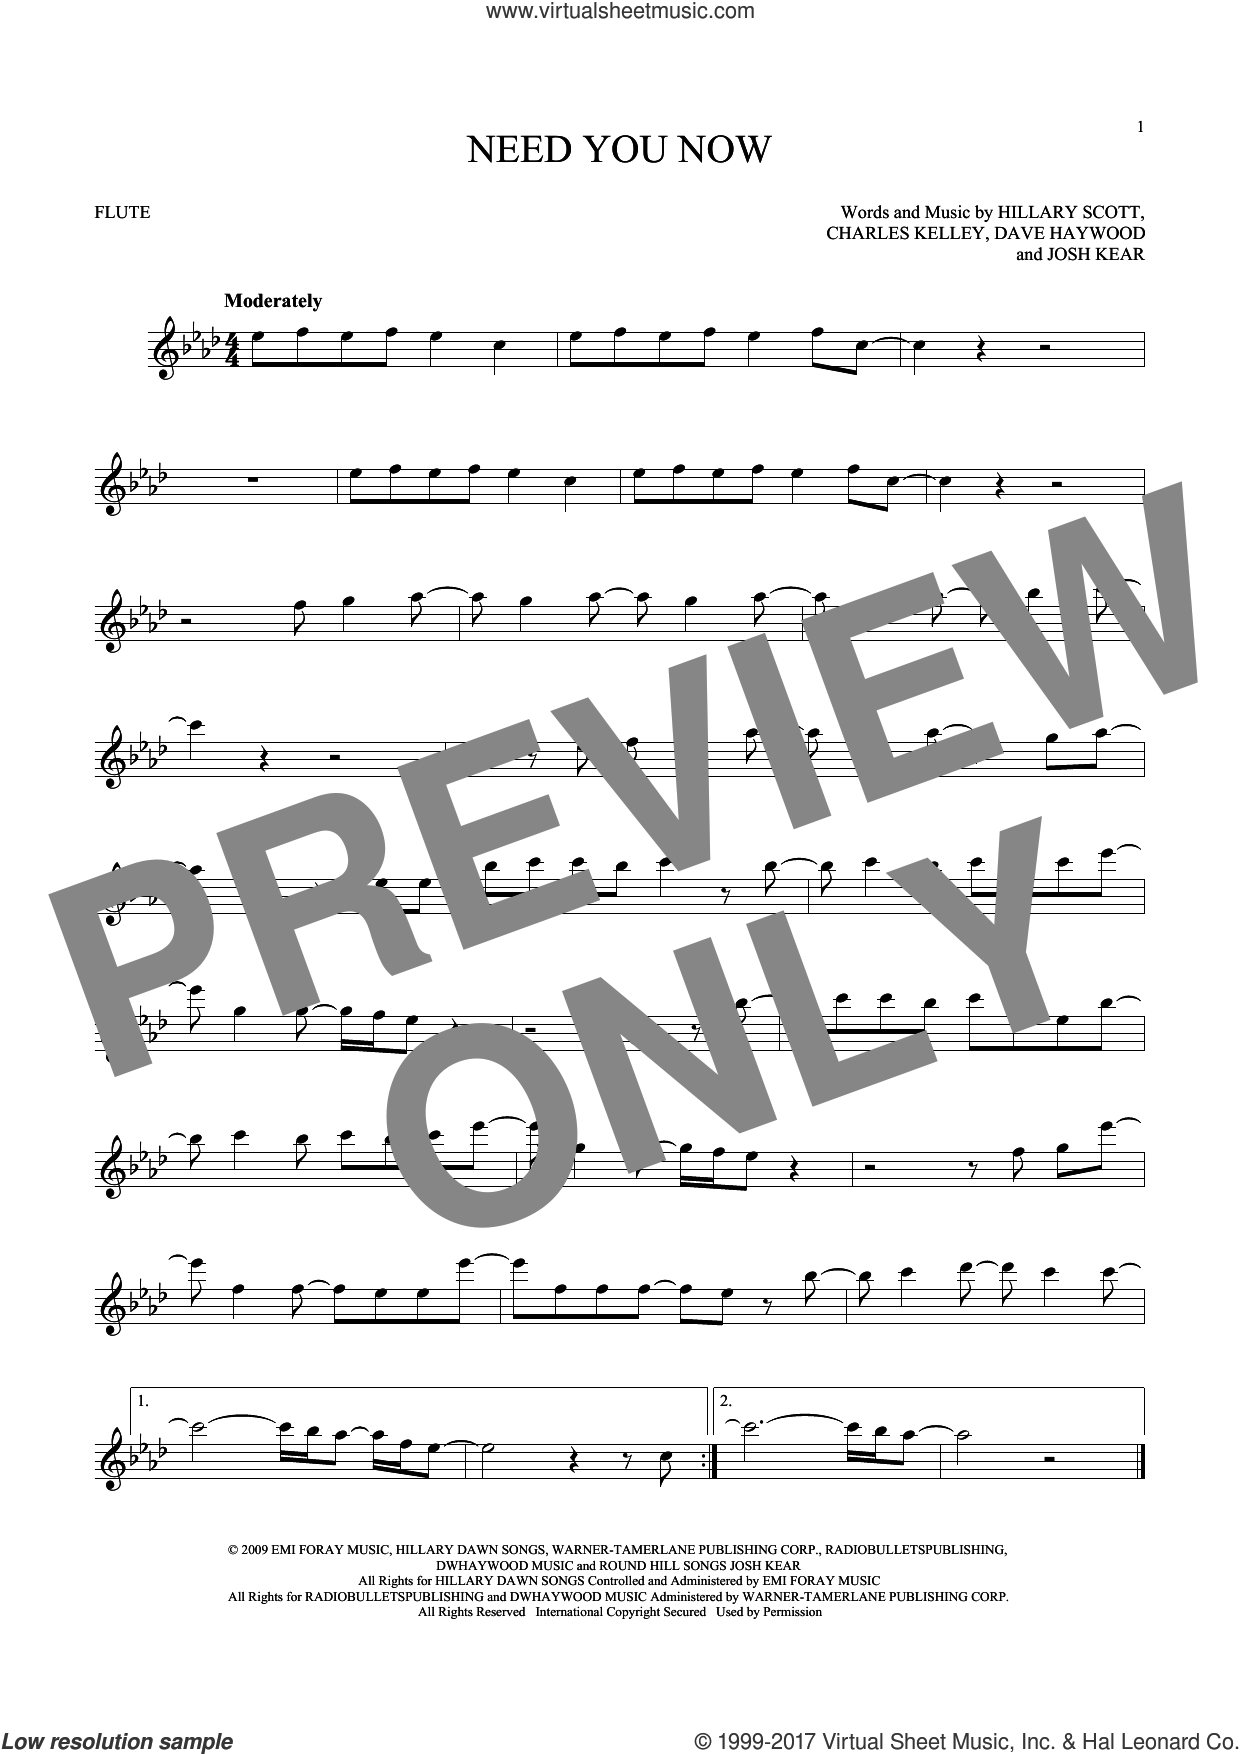 Need You Now sheet music for flute solo by Lady Antebellum, Charles Kelley, Dave Haywood, Hillary Scott and Josh Kear, intermediate skill level